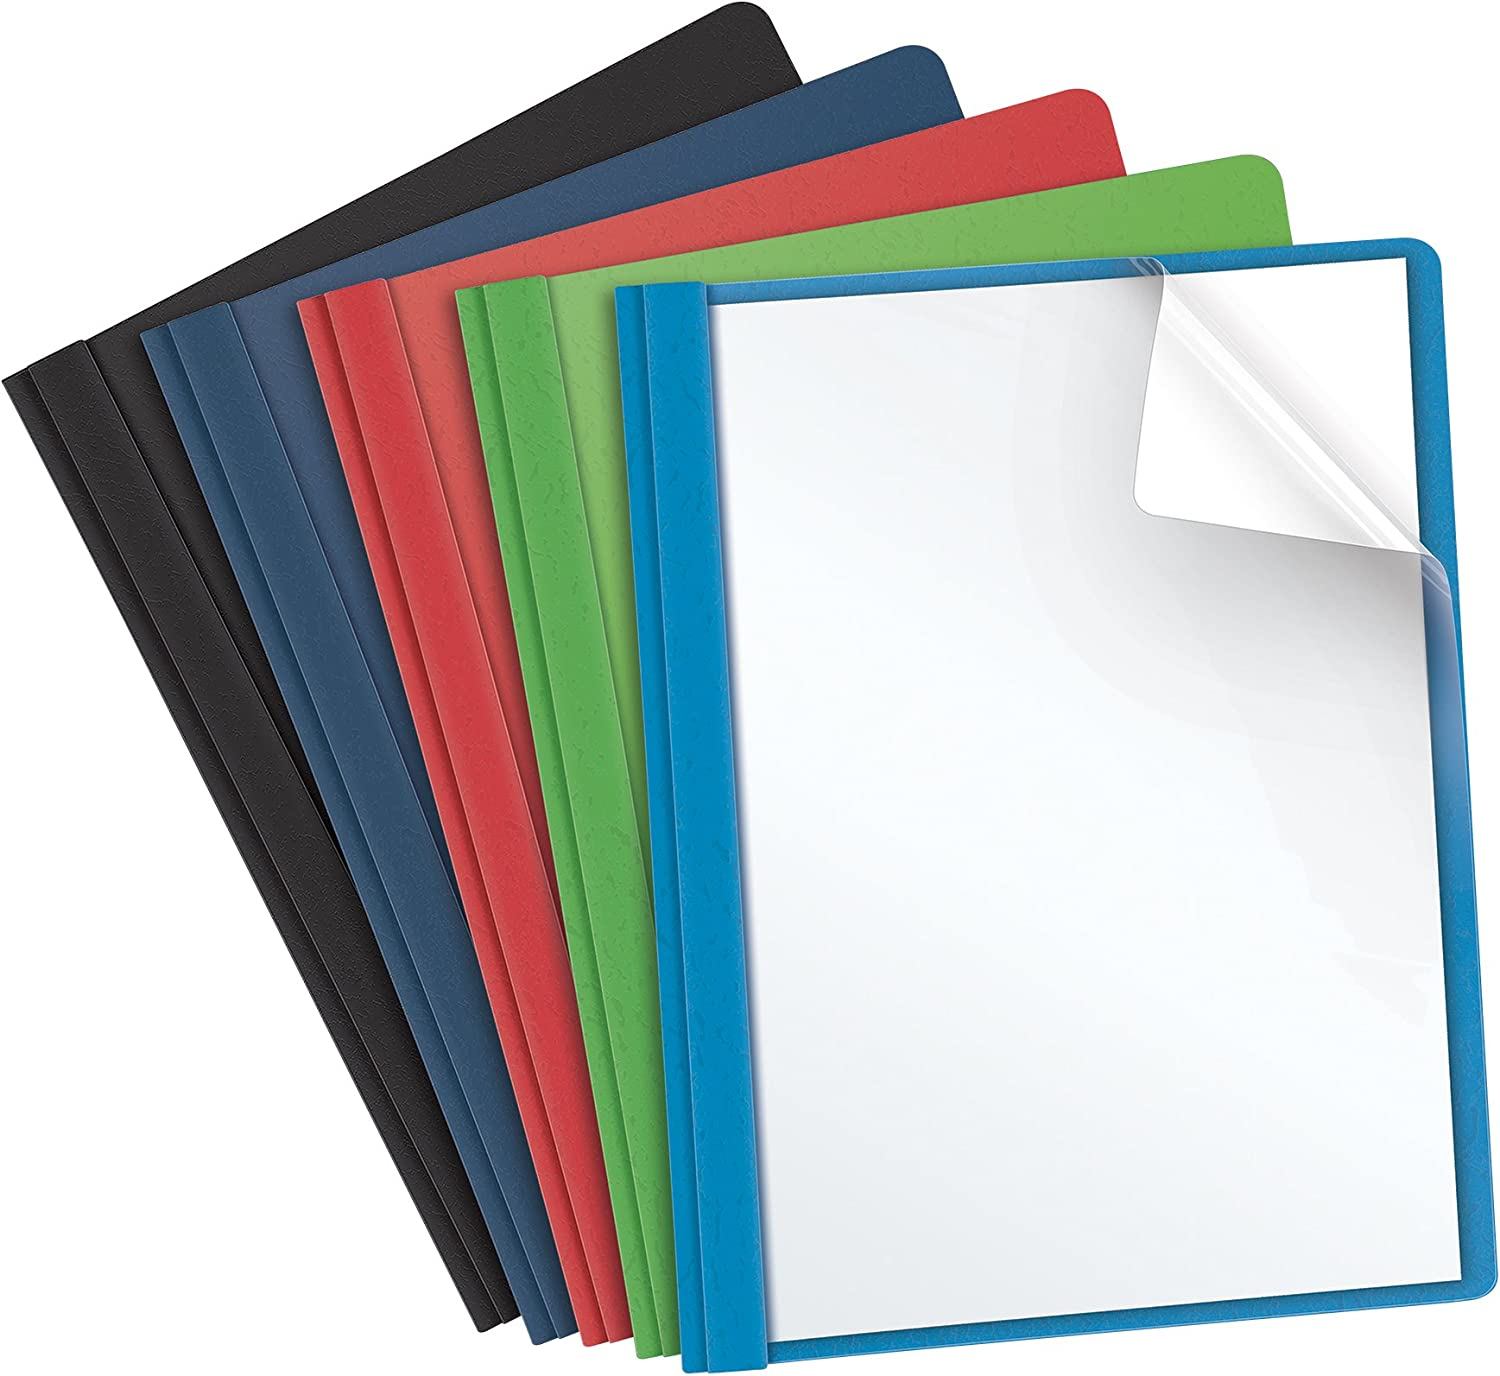 Oxford Clear Front Report Covers, Assorted Colors, Letter Size, 25 per Box (55813EE) : Business Report Covers : Office Products